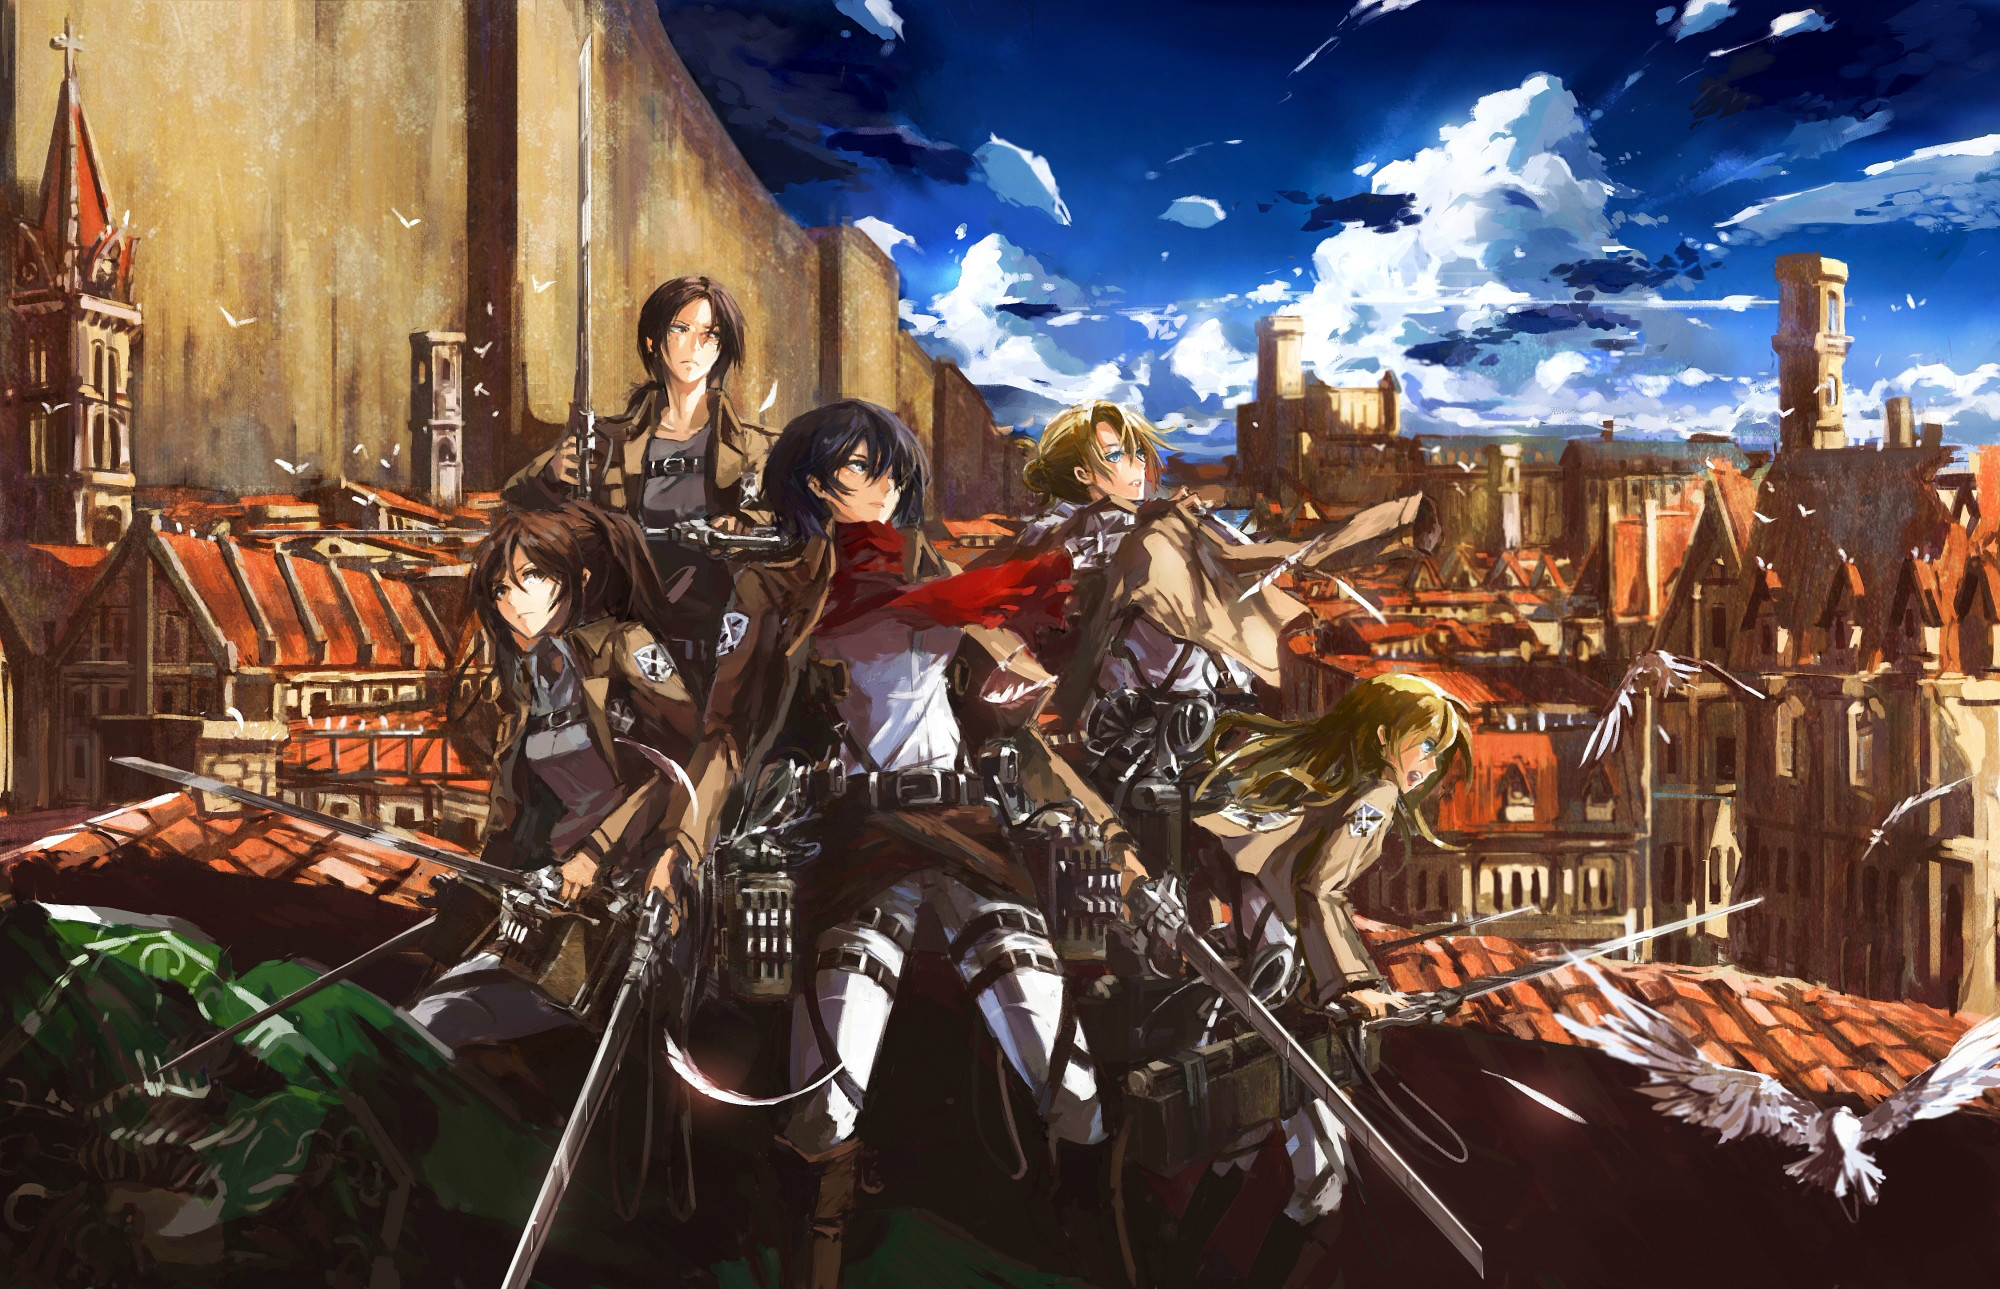 2000x1289 shingeki no kyojin animal annie leonhardt bird gun mikasa ackerman sasha  browse shingeki no kyojin stu dts weapon ymir (shingeki no kyojin) wallpaper  ...